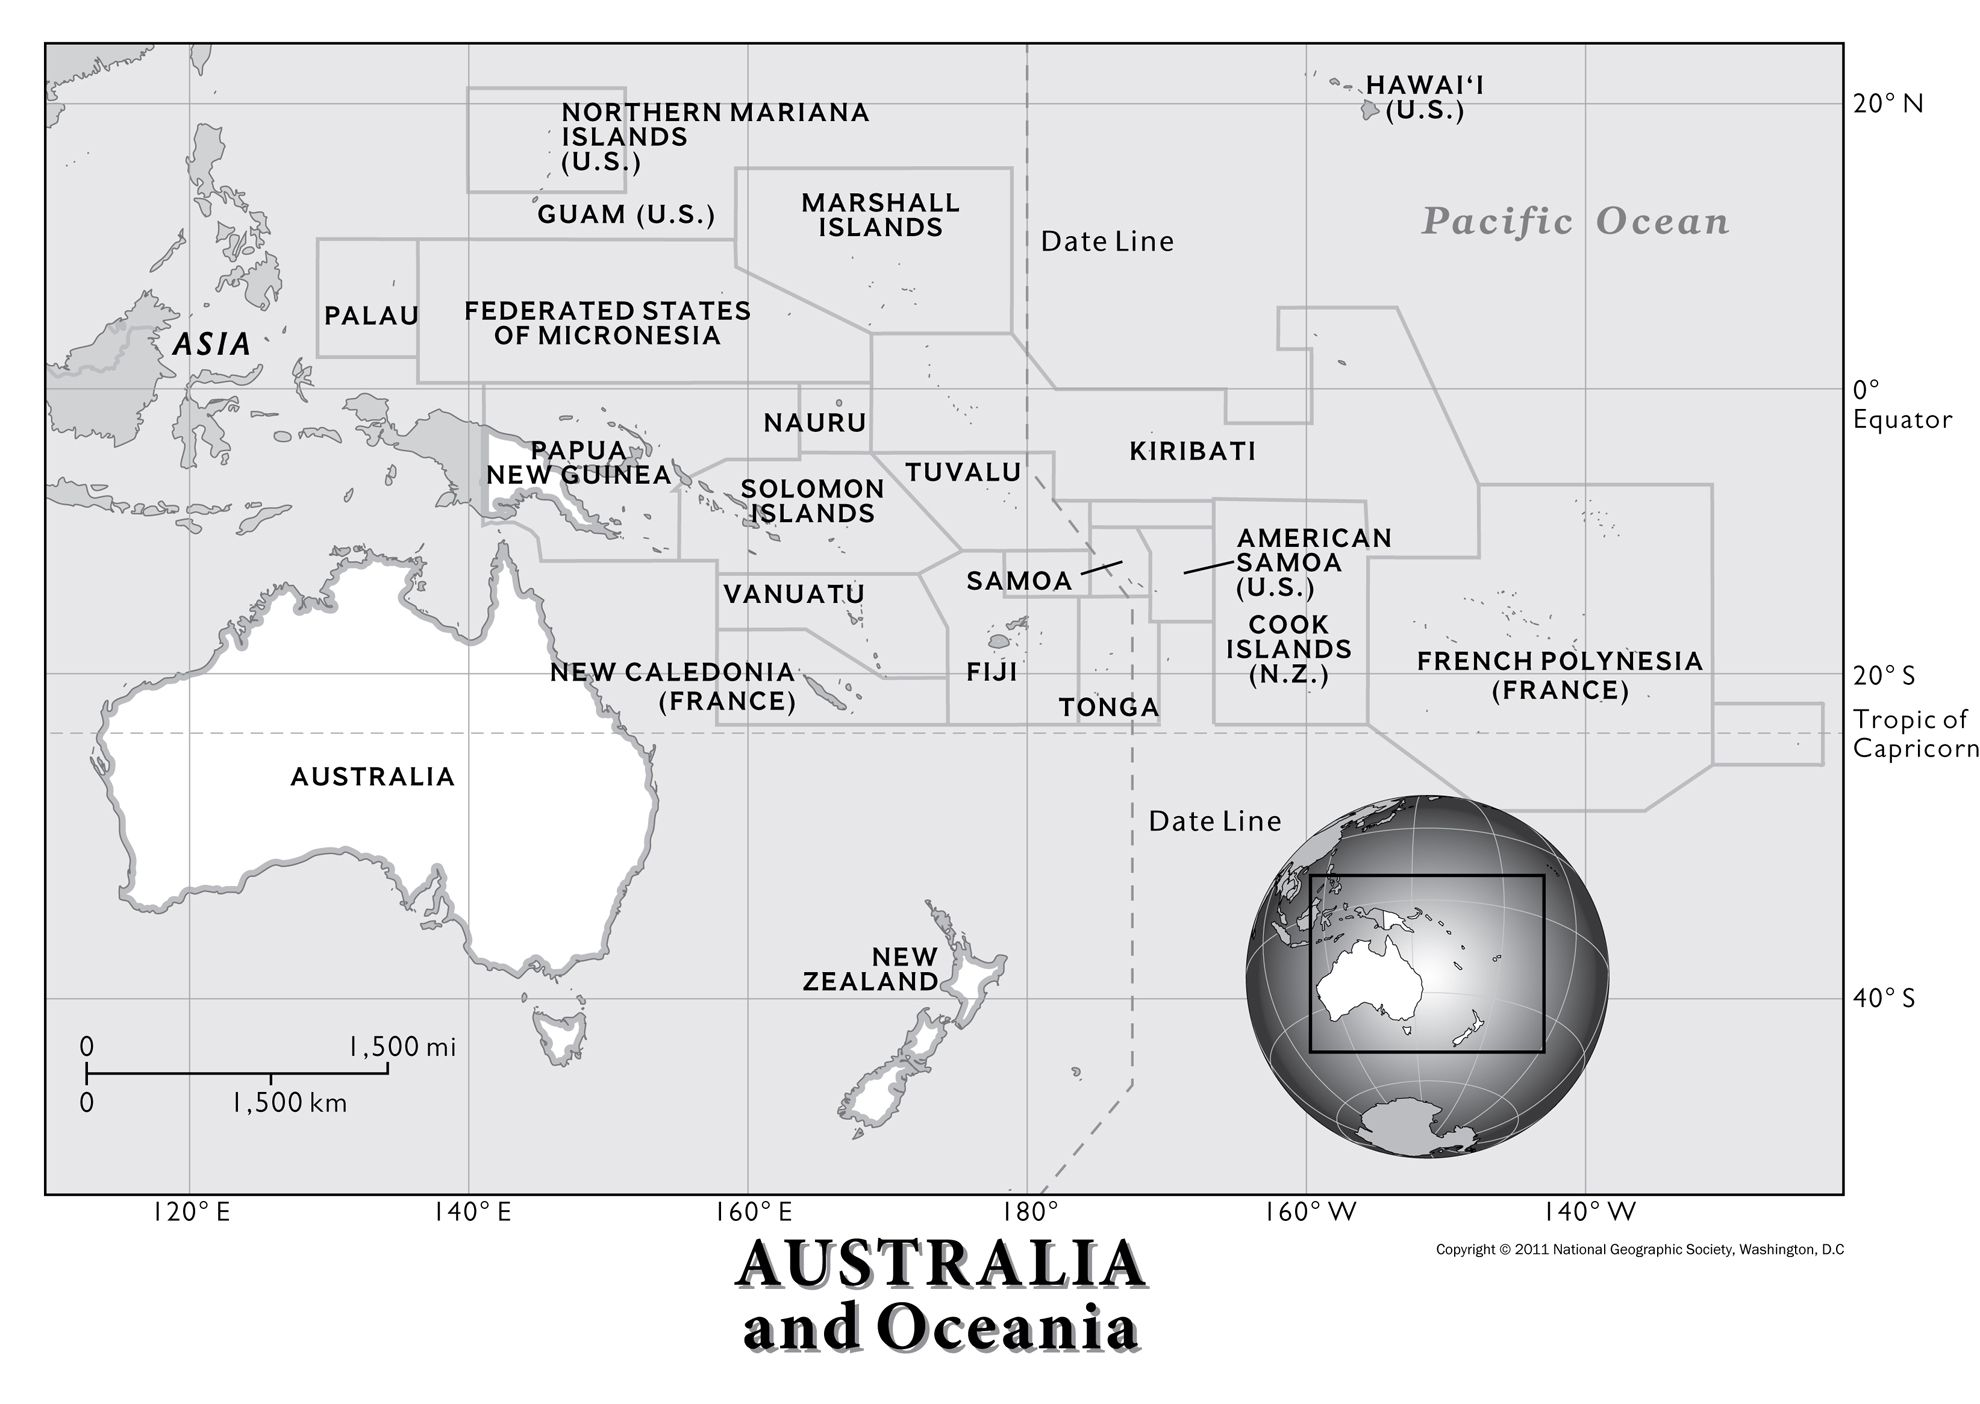 Australia and Oceania: Human Geography | National Geographic